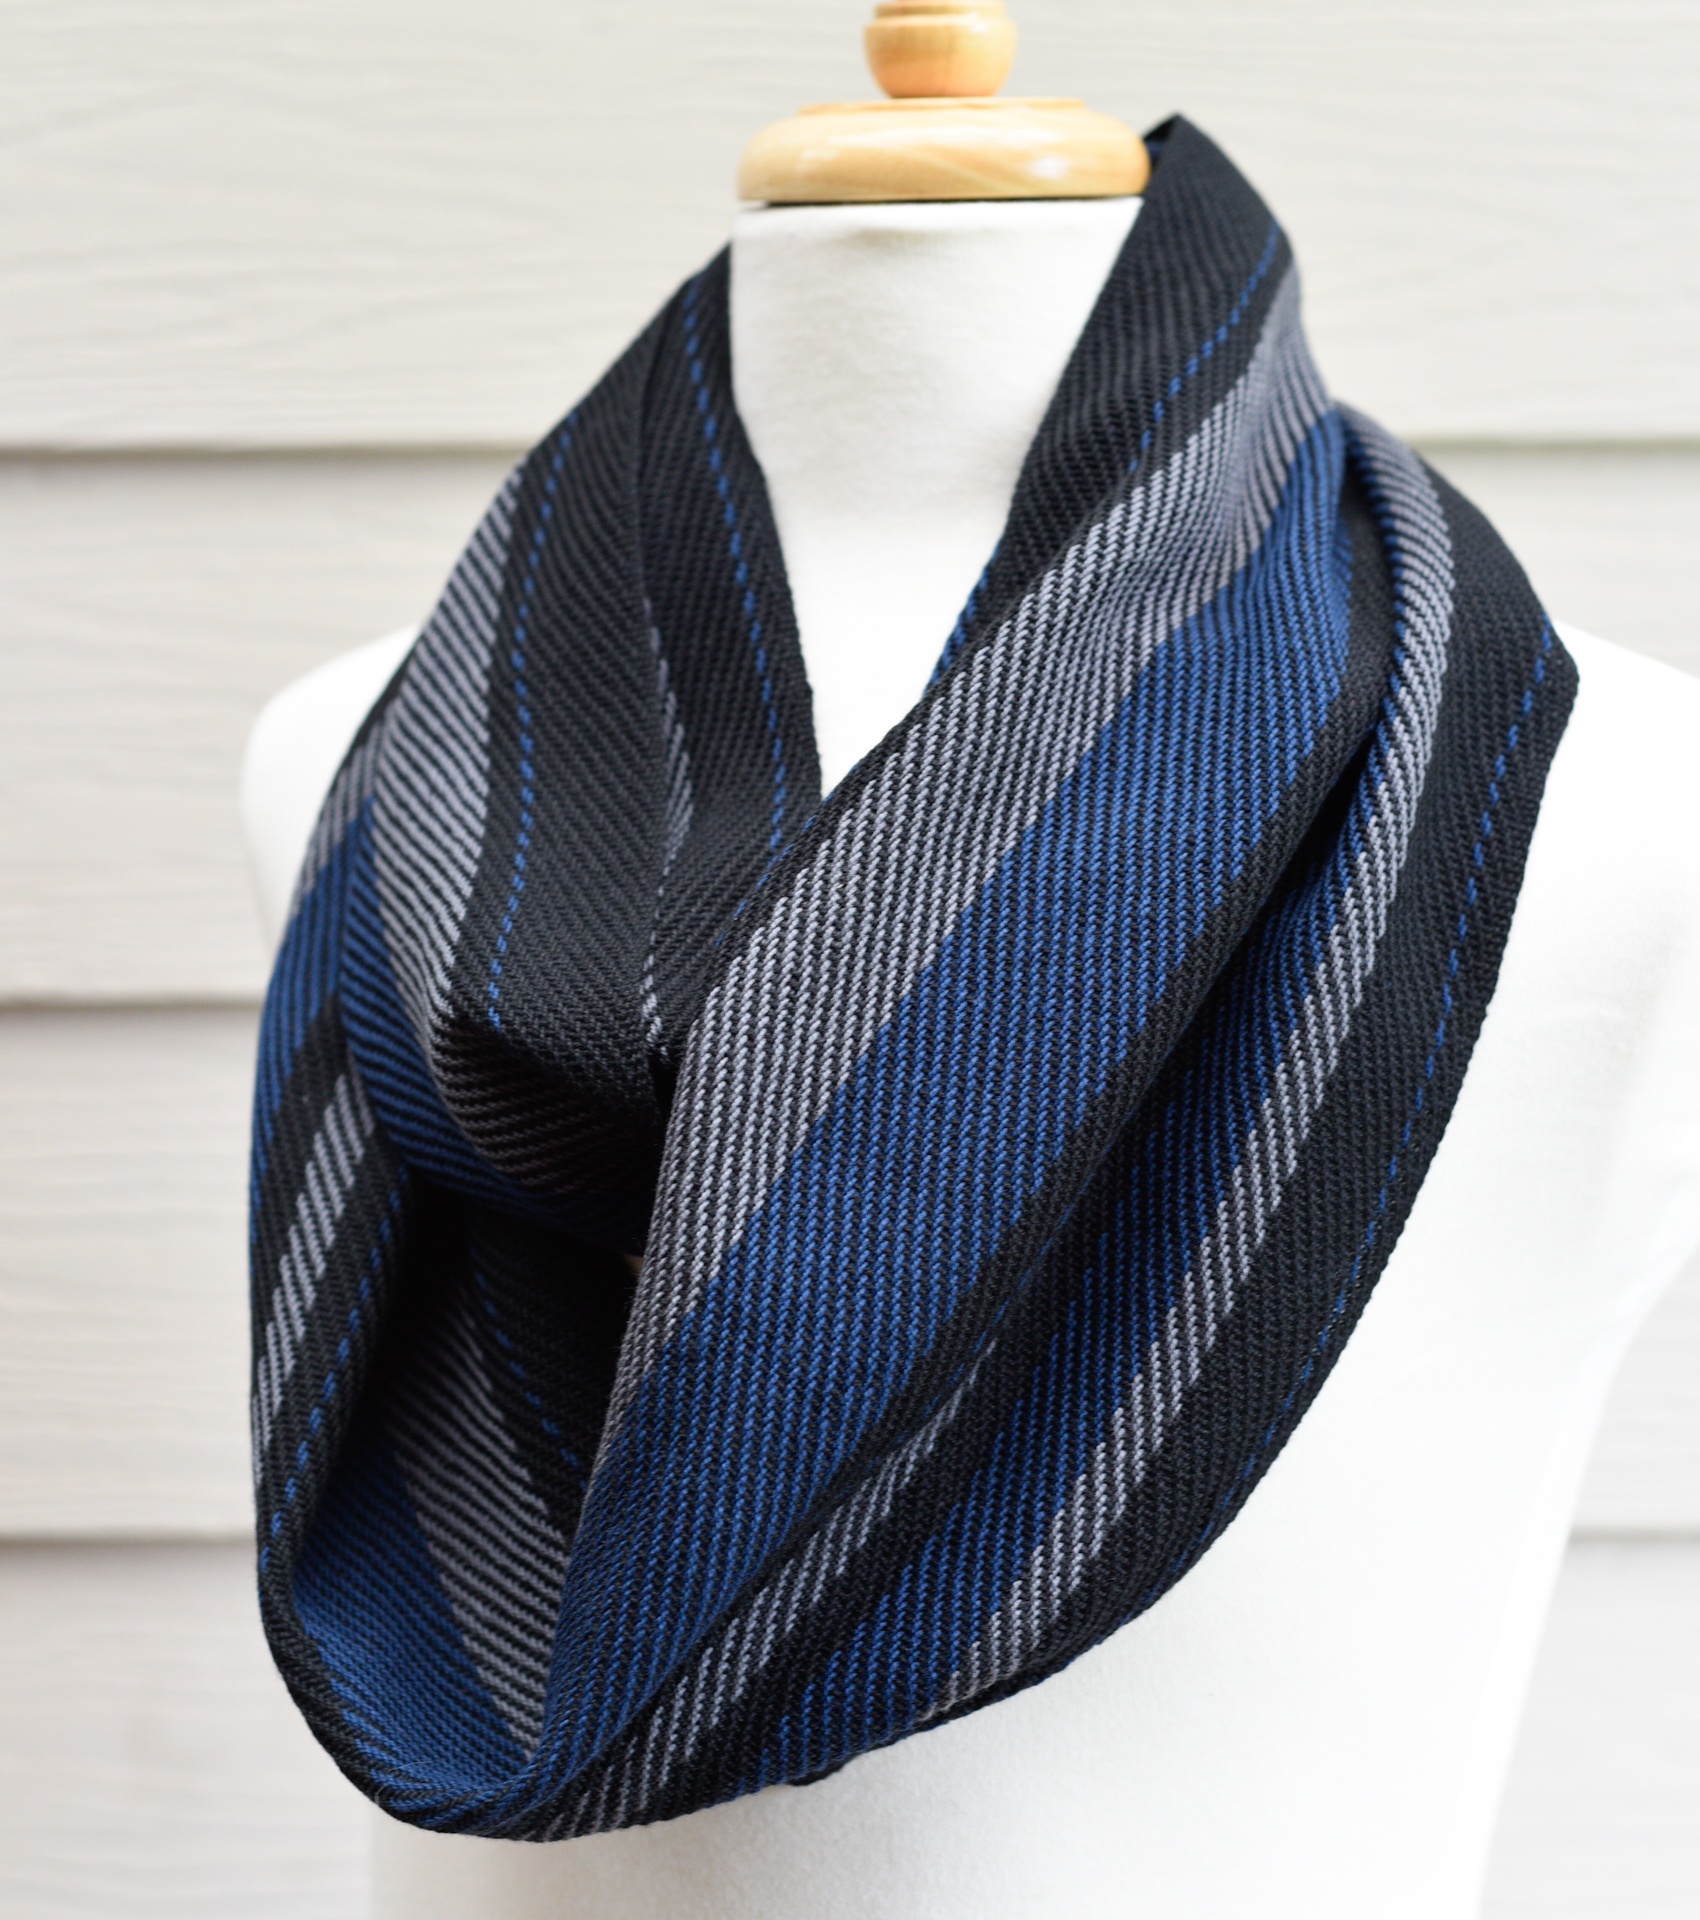 HandwovenMensScarf_BlueDapper1.jpg